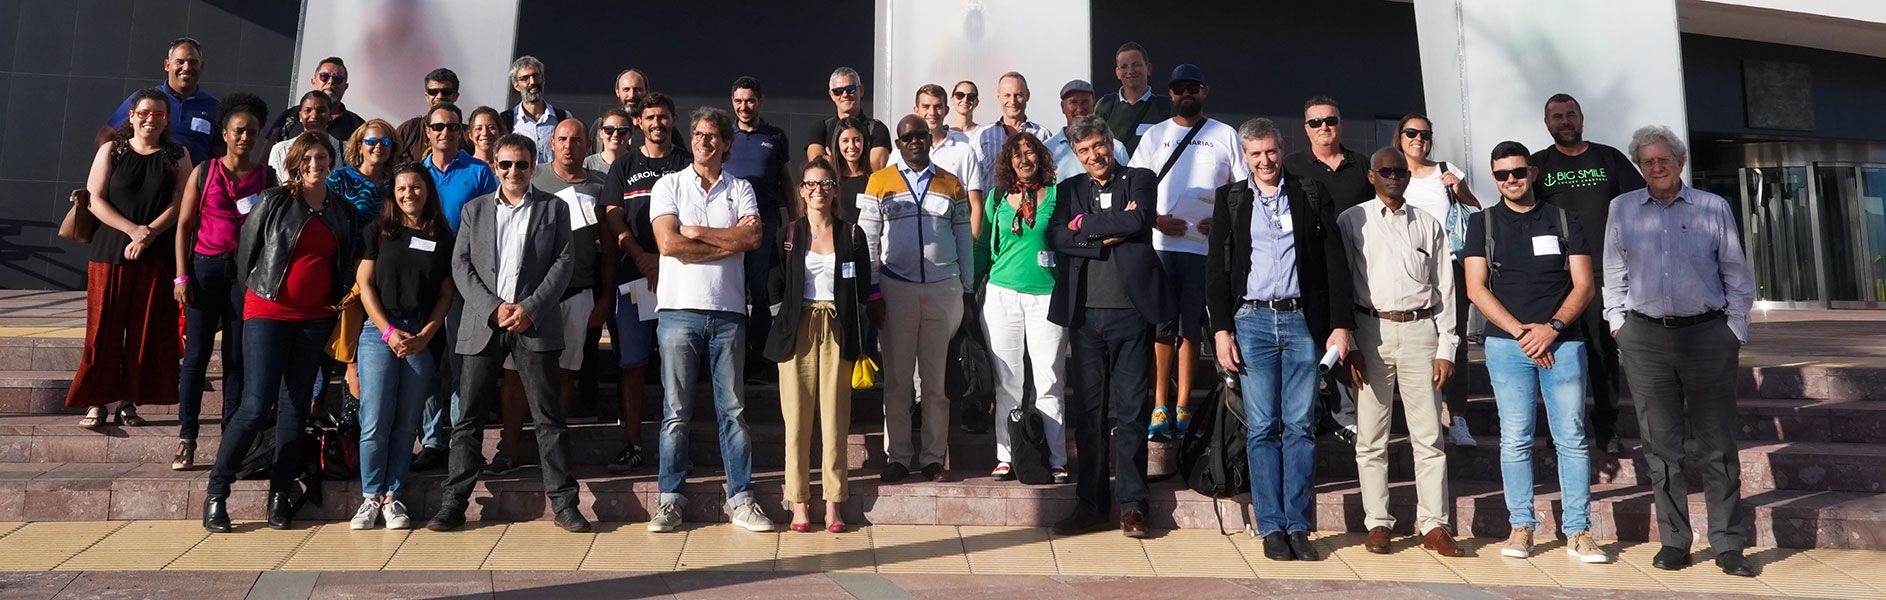 Closure meeting of the MARCET project to protect and monitor cetaceans in the Macaronesia